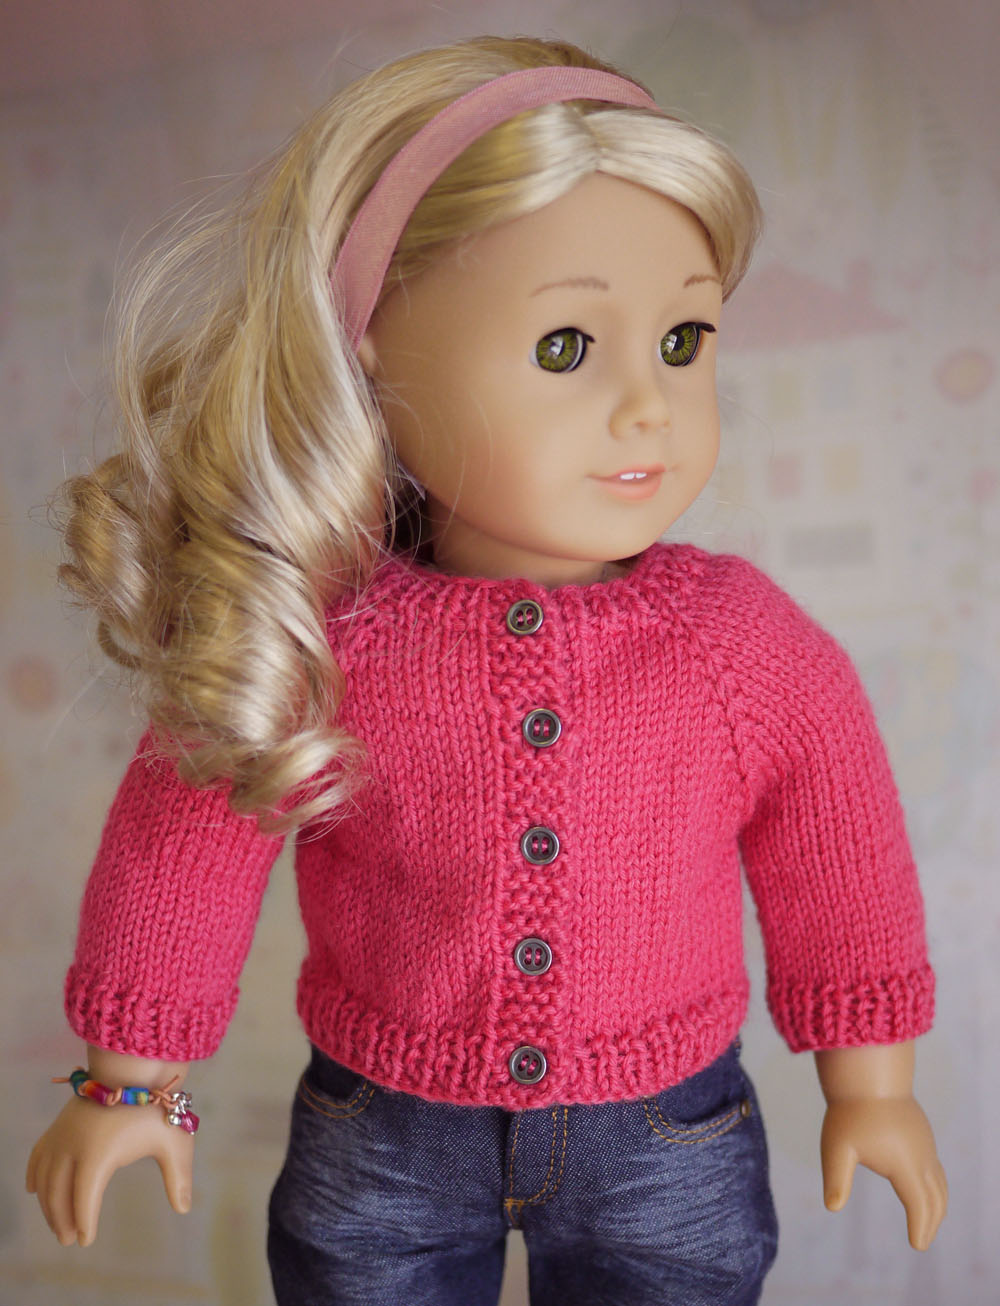 American Girl Doll Cardigan Sweater Knitting Pattern | Cindy Rice ...